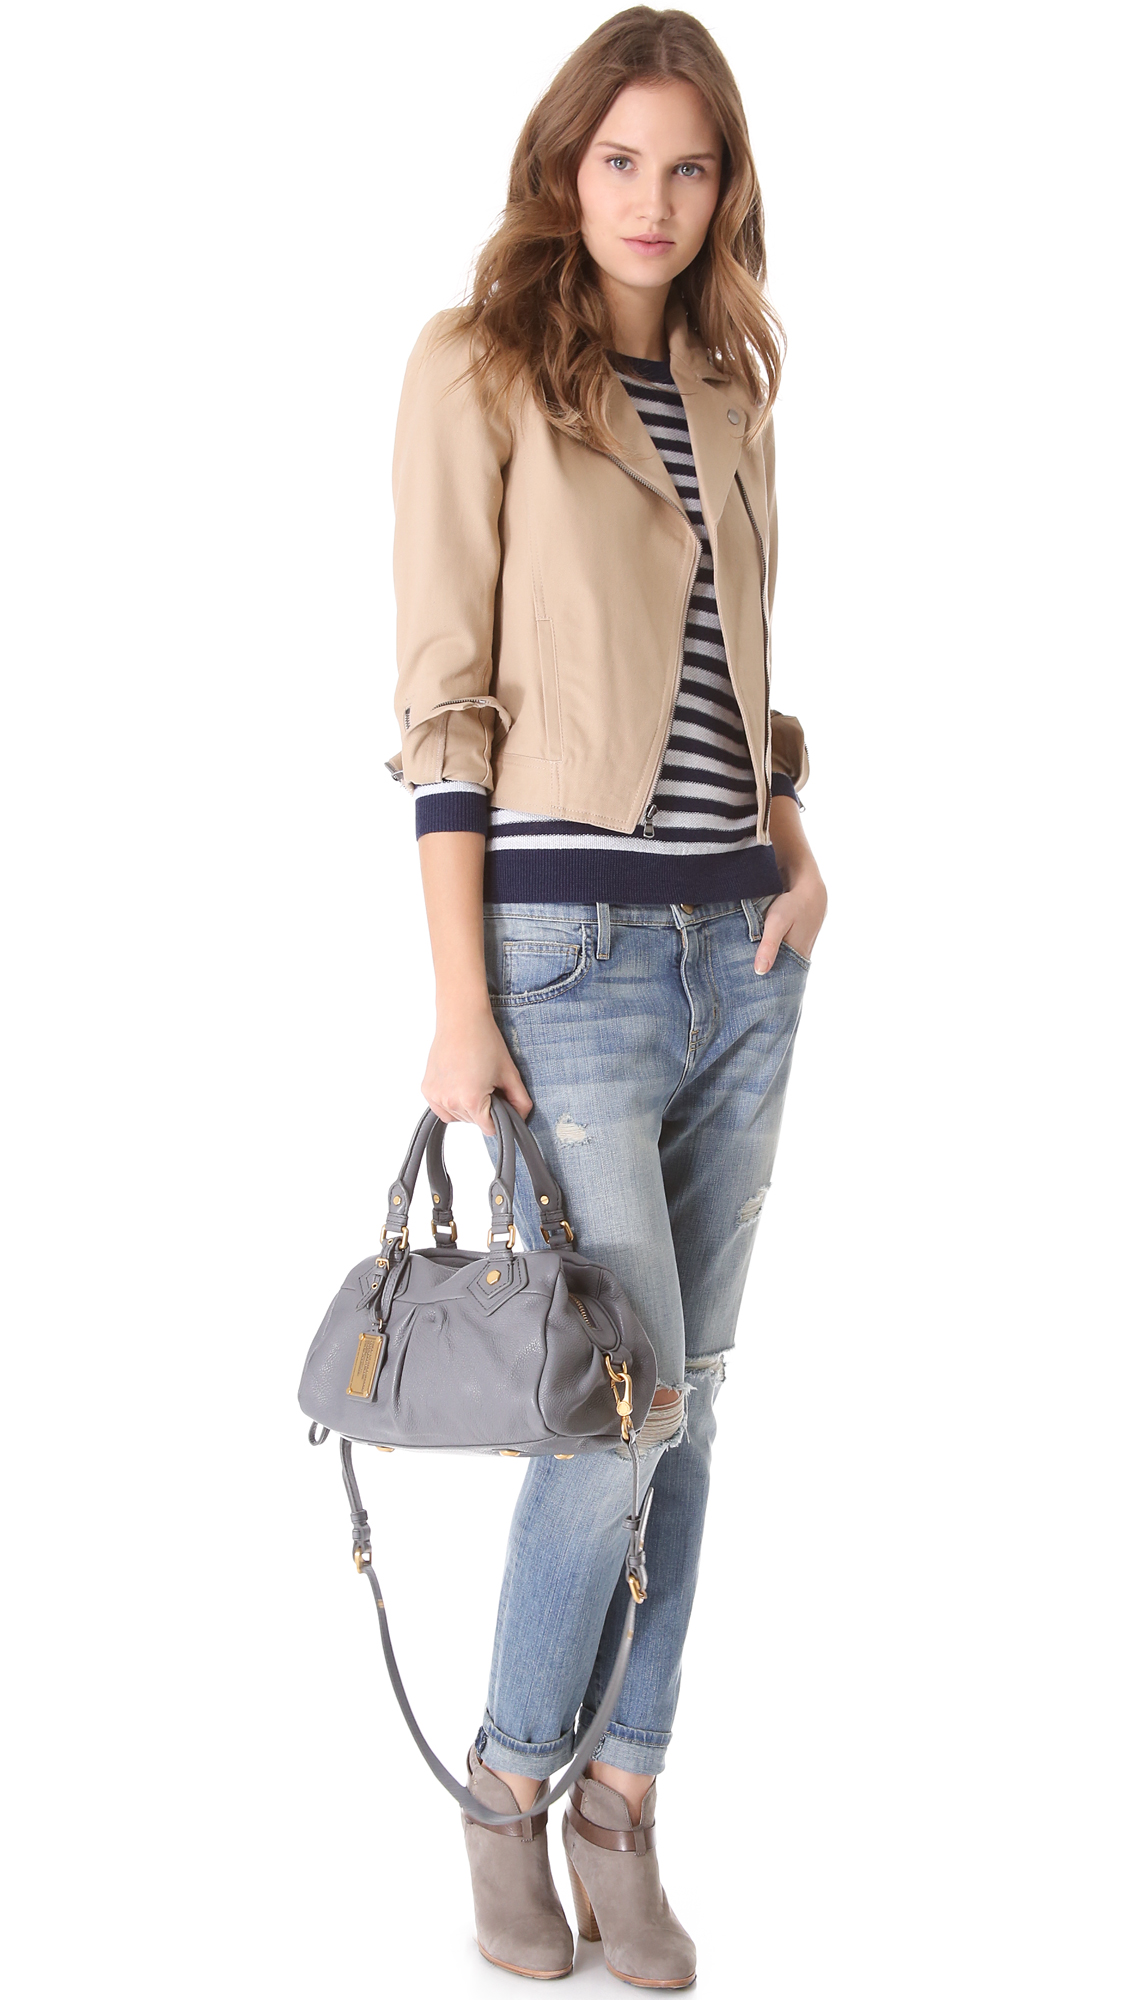 93529fd40094 Marc by Marc Jacobs Classic Q Baby Groovee Bag